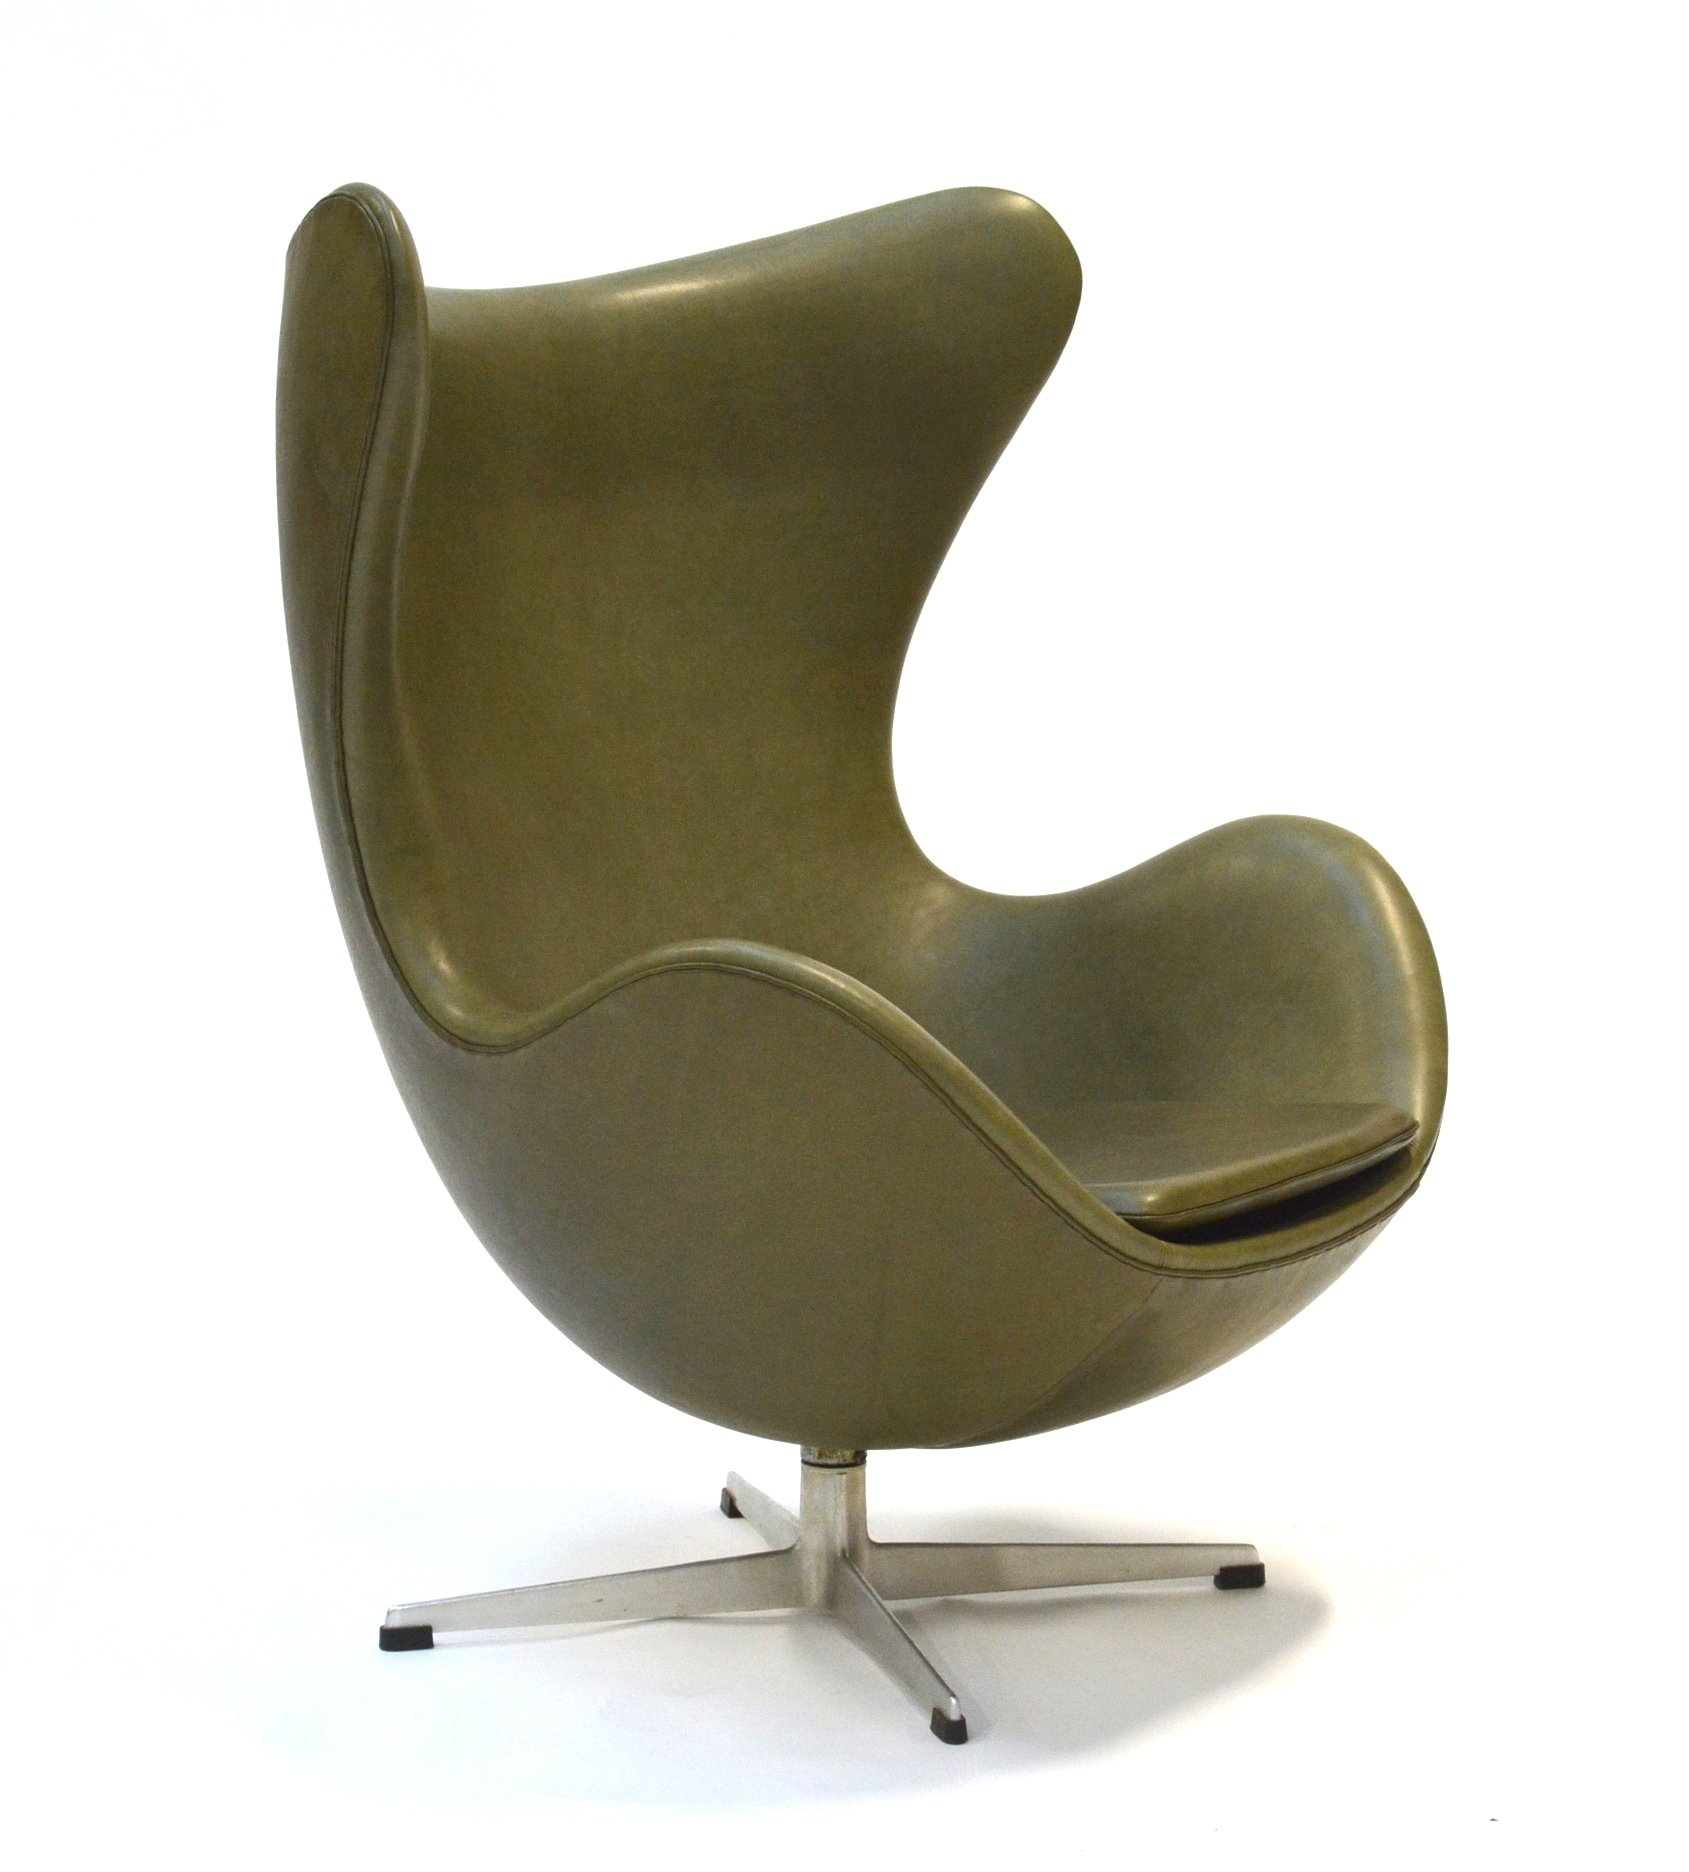 Early Edition Egg Chair By Arne Jacobsen For Fritz Hansen